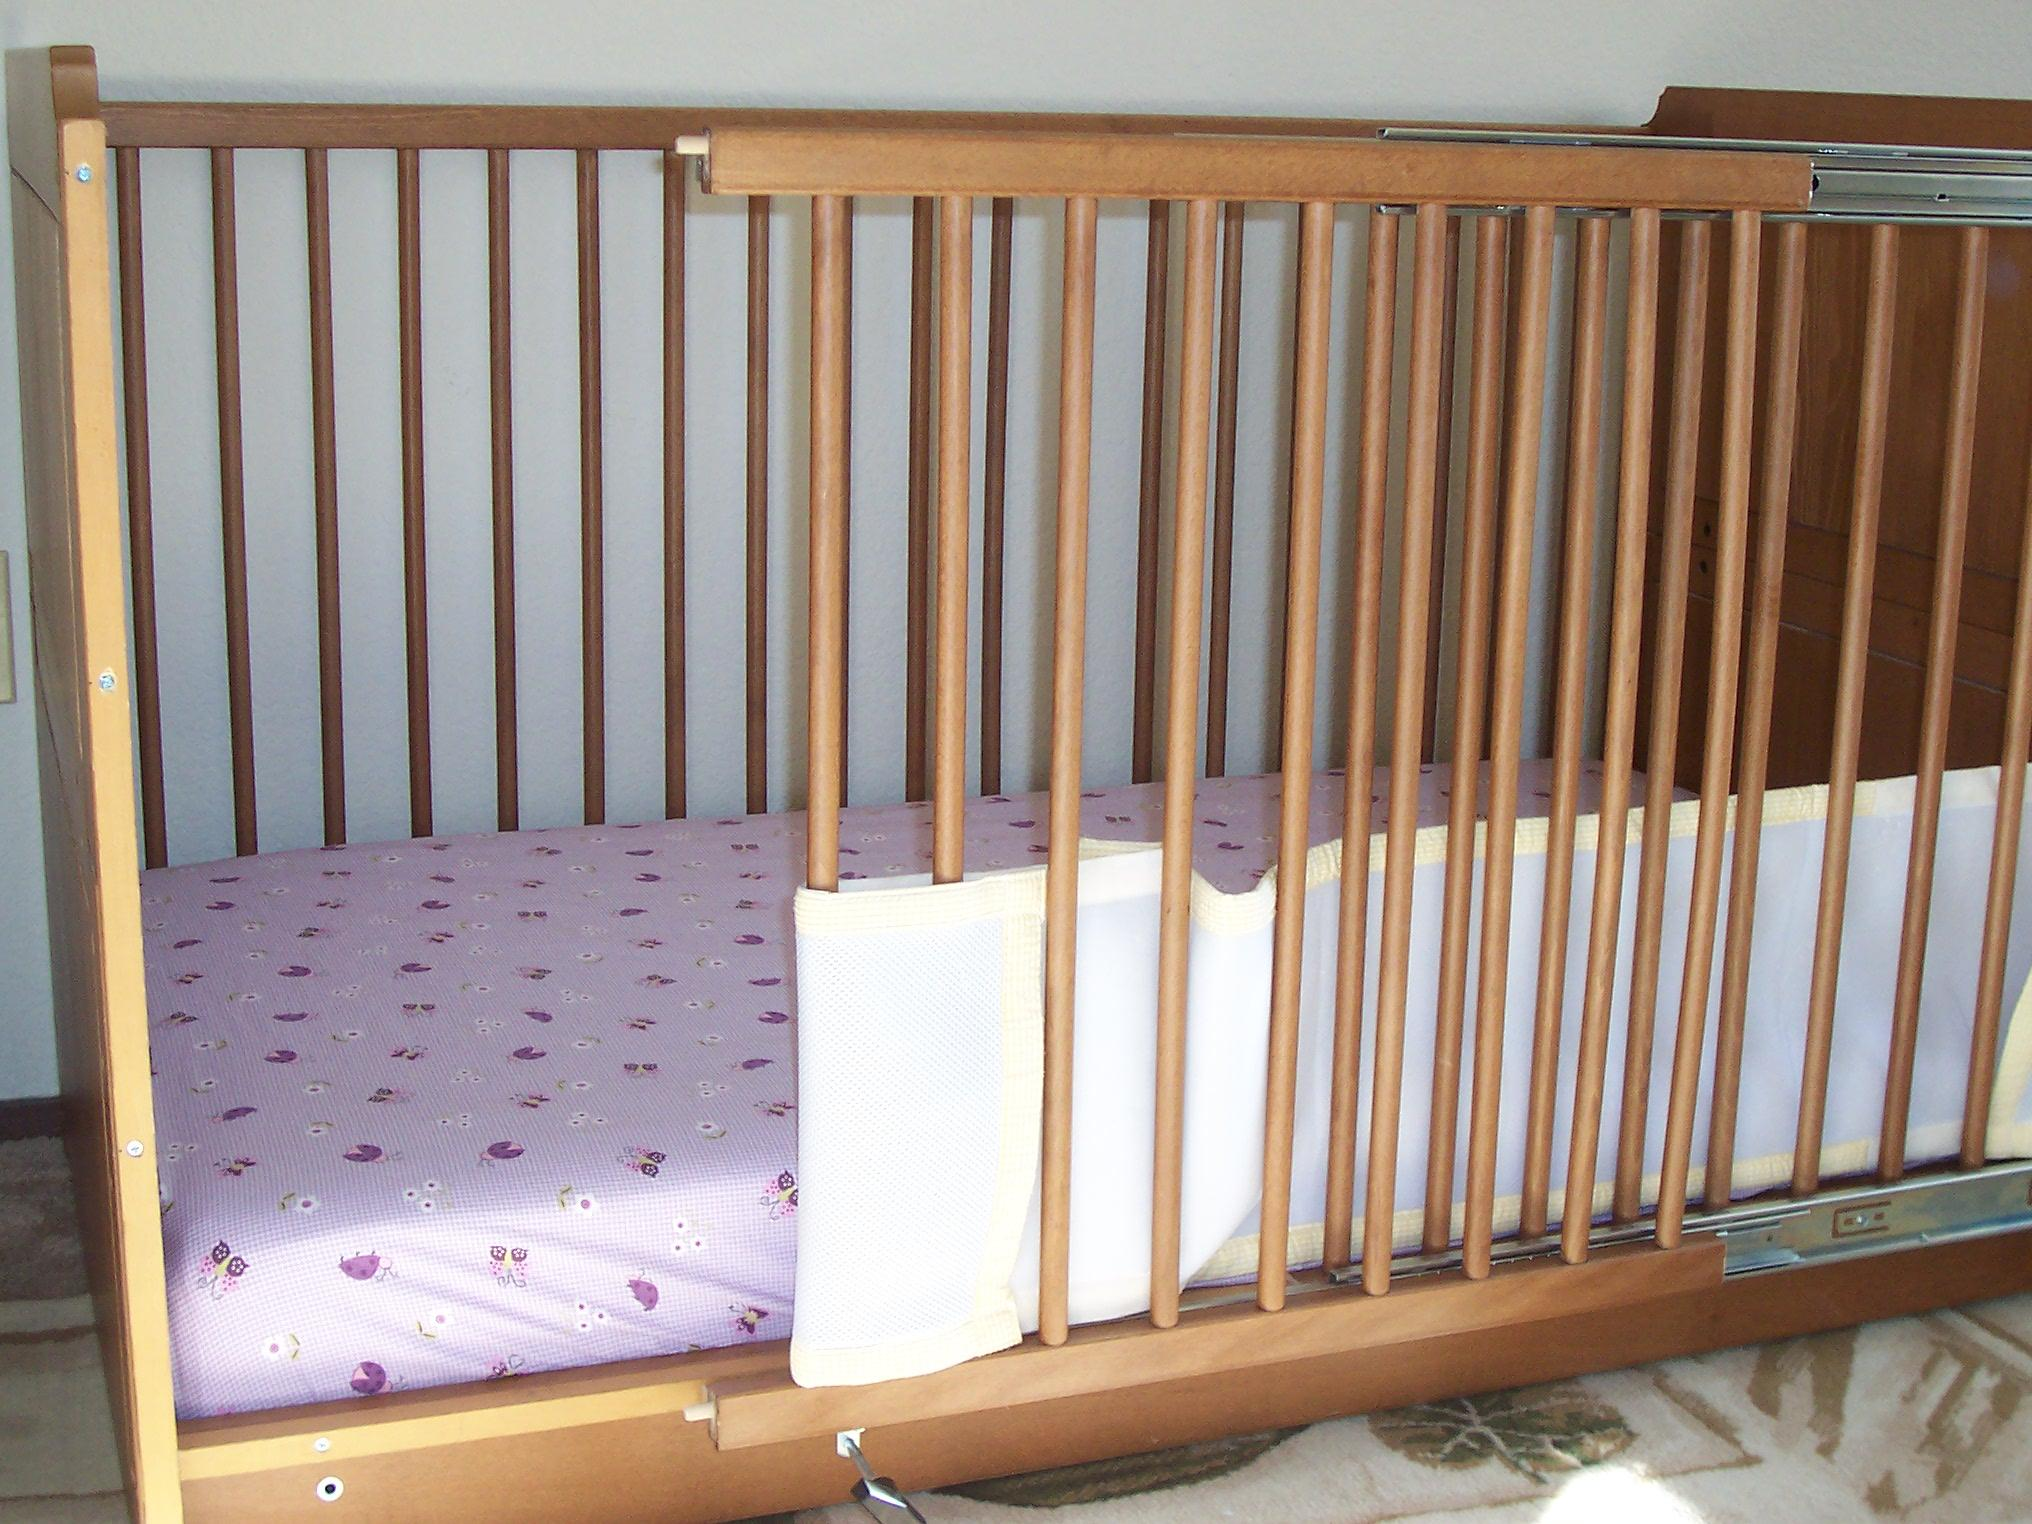 Crib Modification For Accessibility 26 Steps With Pictures Instructables